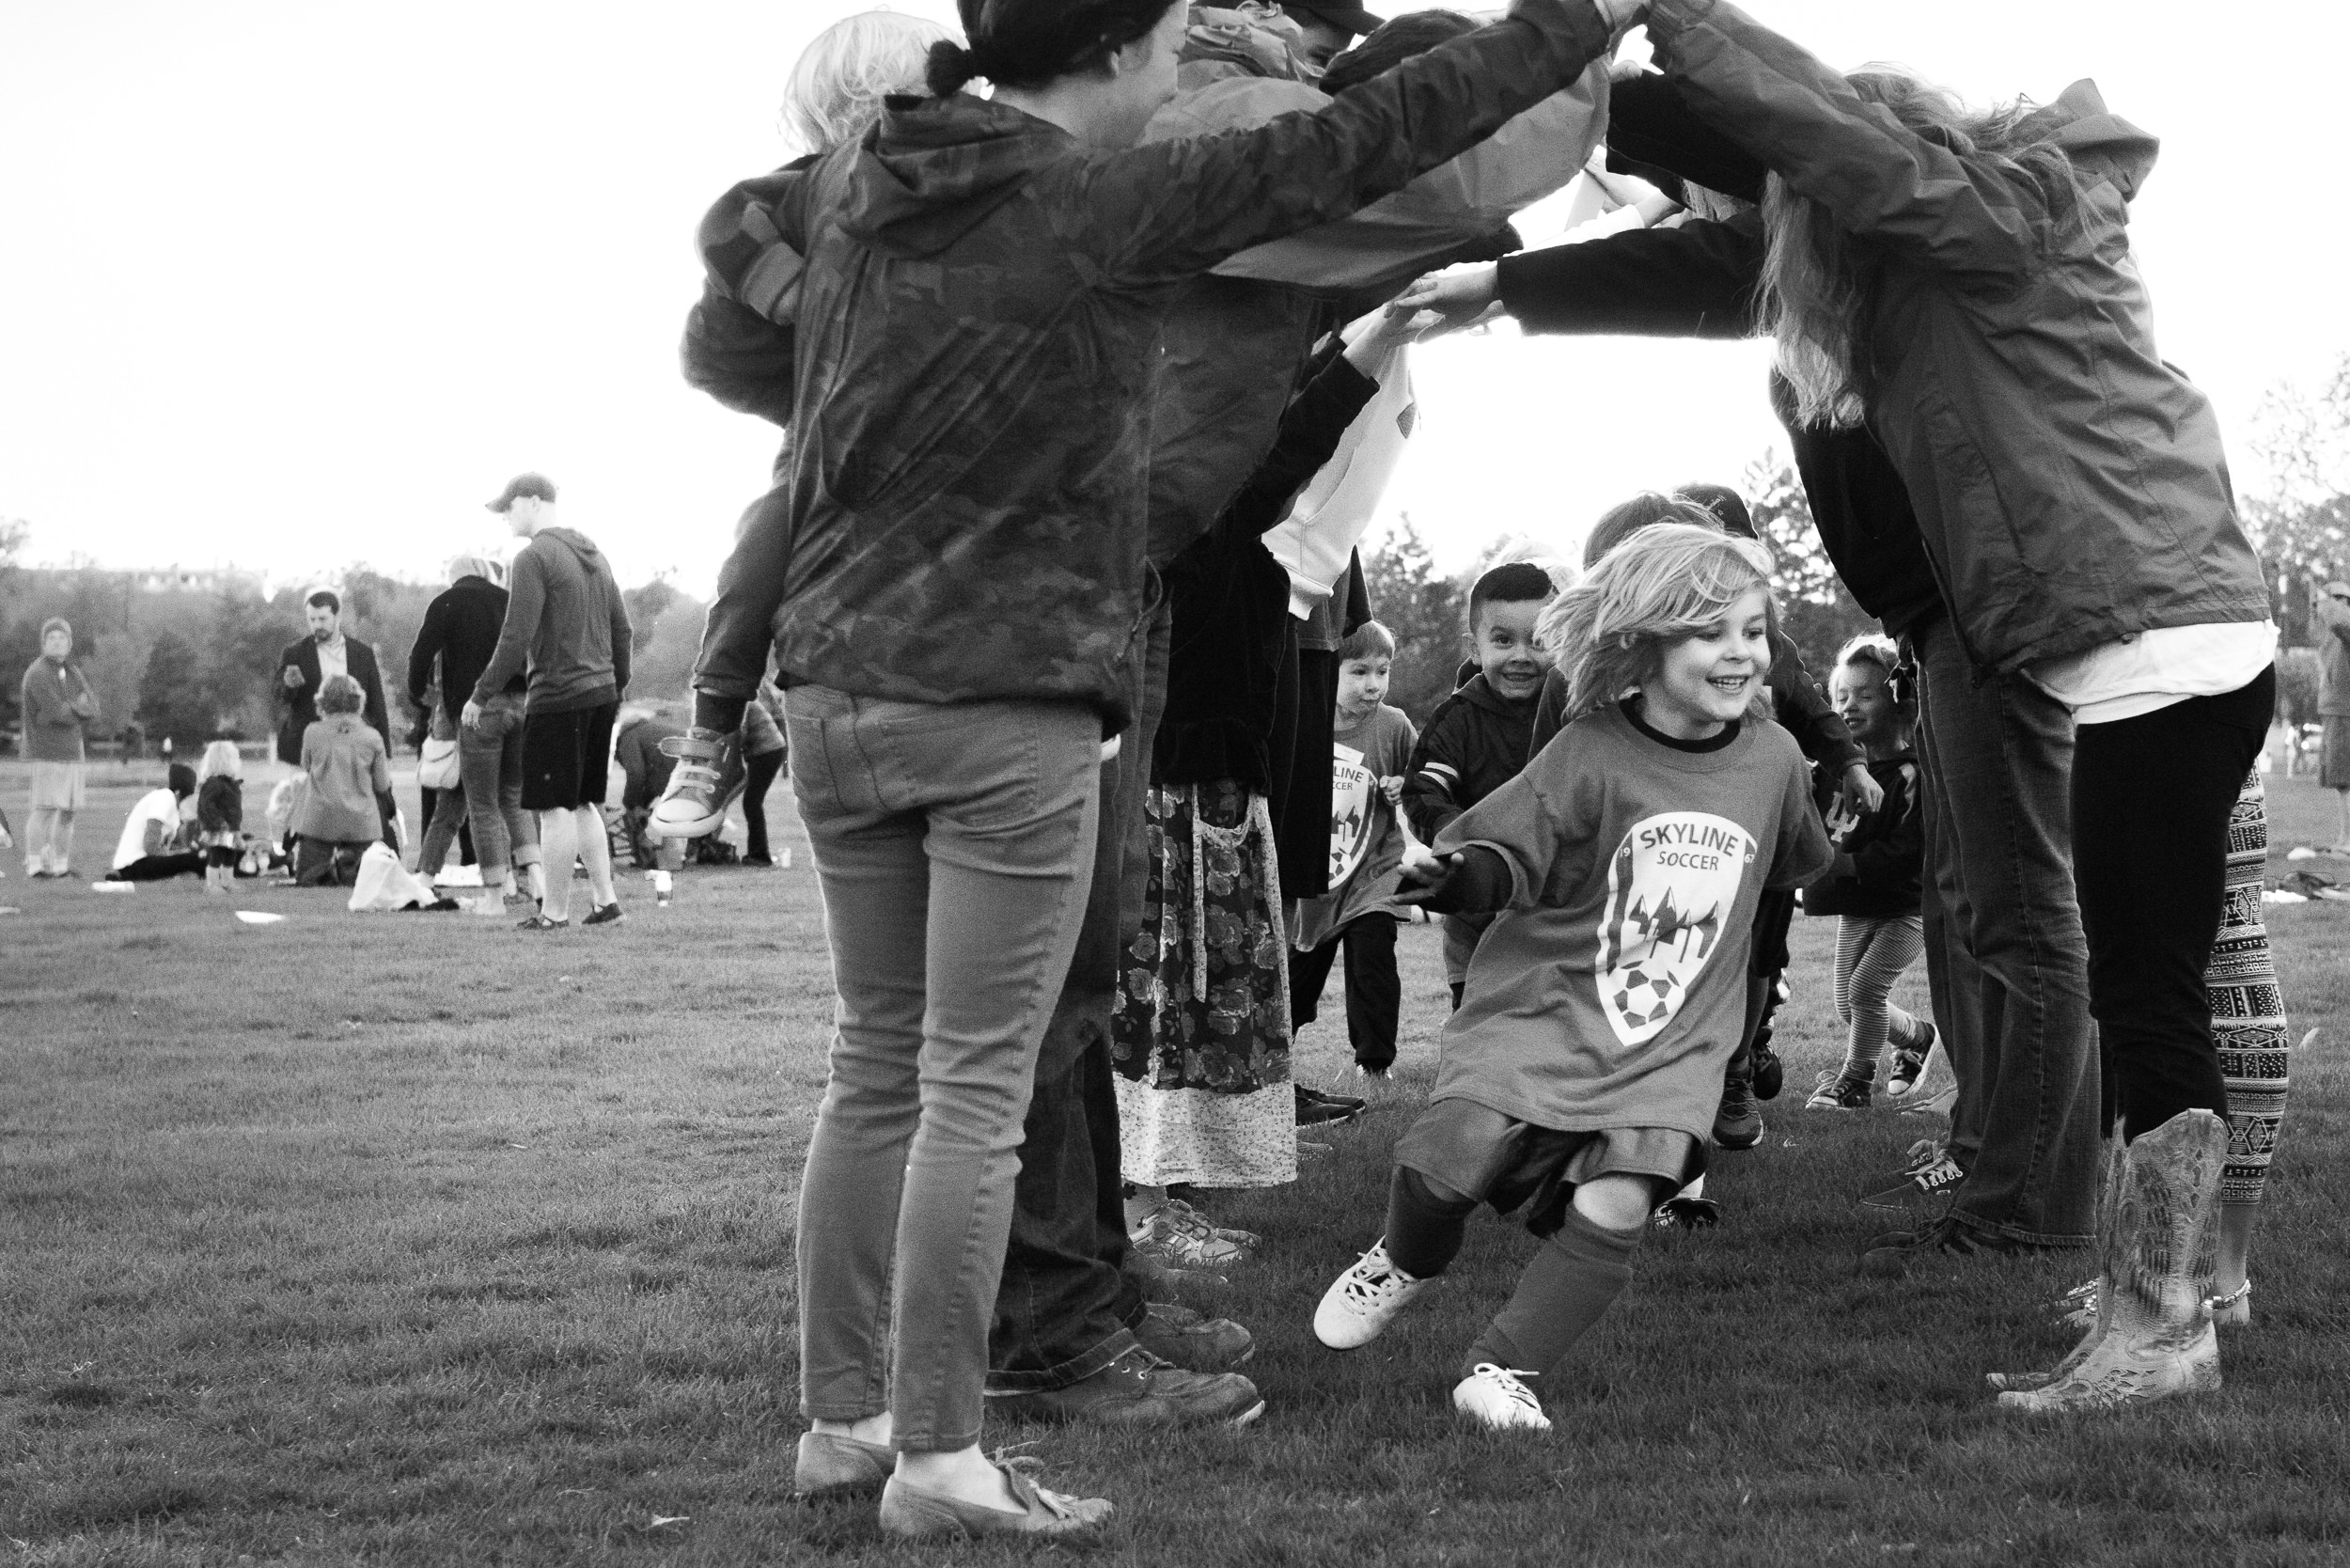 Black and White Documentary Family Photography in Denver, Colorado - boy at soccer practice